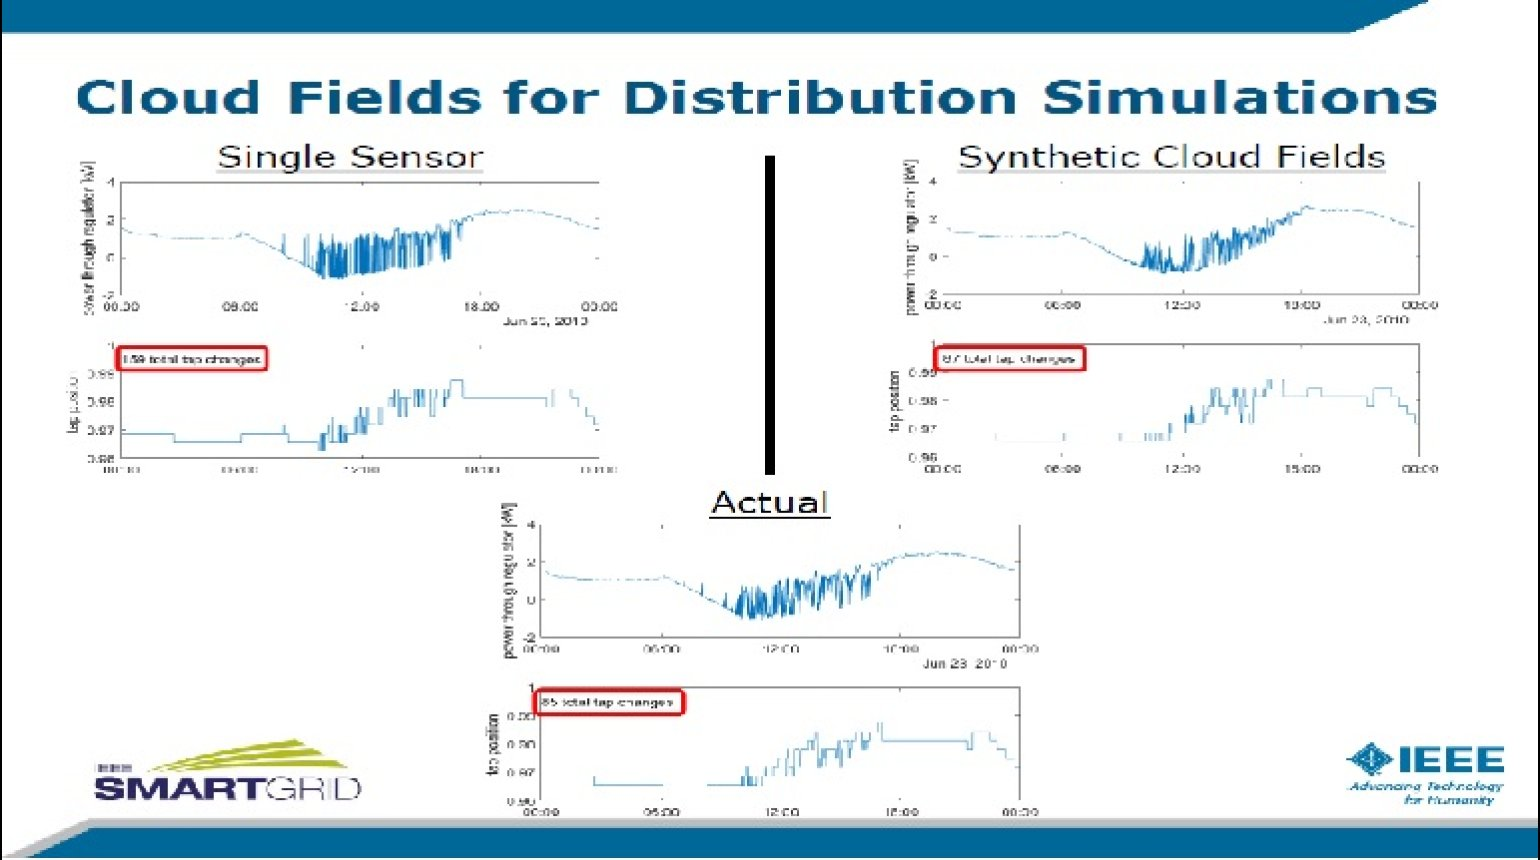 Advances in Distribution System Time-Series Analysis for Studying DER Impacts presented by Matthew Reno